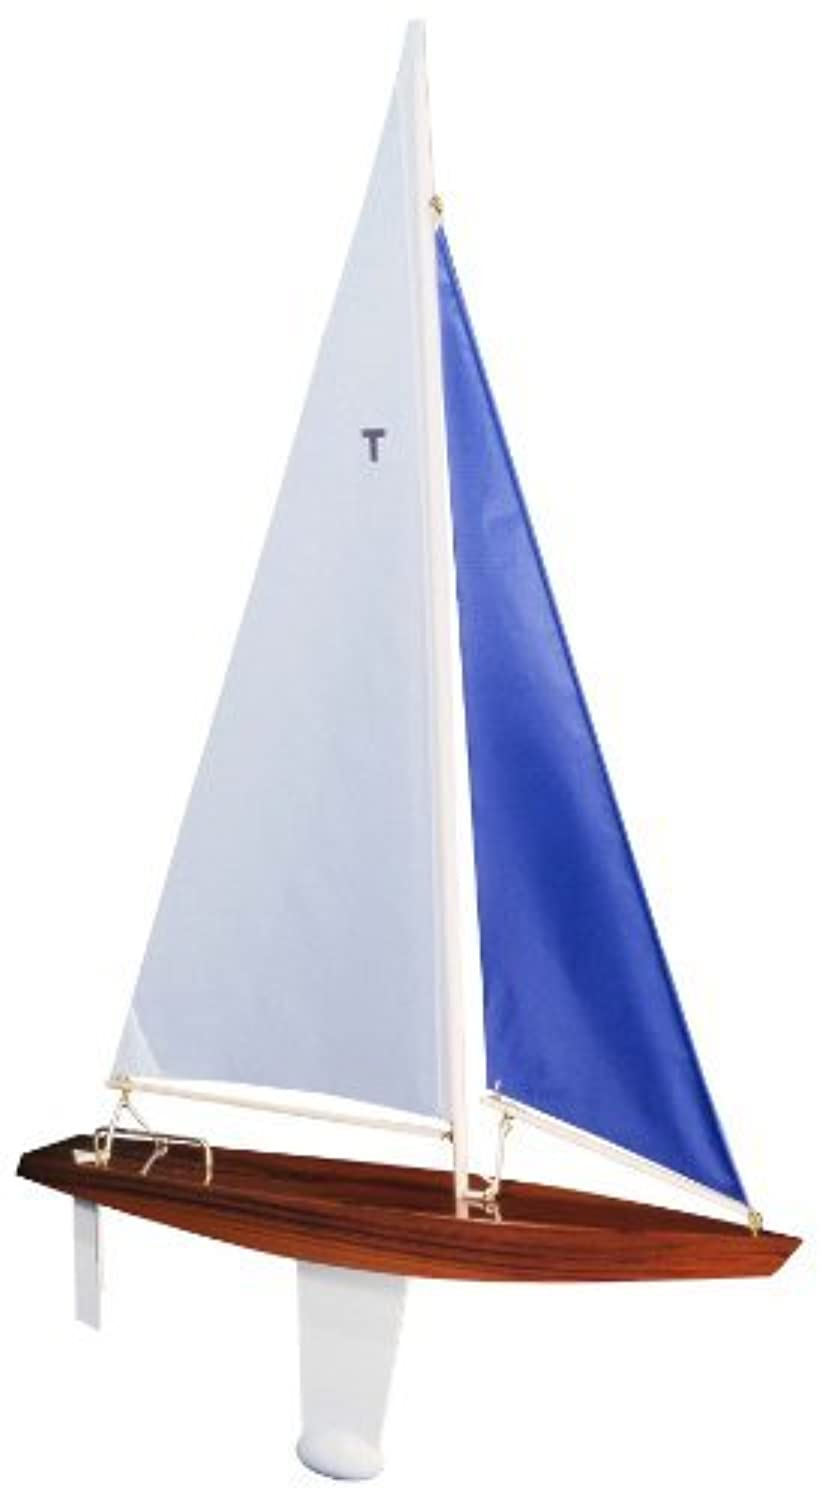 T Class Racing Sloop Finished (White/blue) - Floating Model Sailboat, Toy Sailboats that Sail, Toy Sailboats that Float, Toy Sailboat Wood, Toy Sailboat Wooden - It Really Sails! by Tippecanoe Boats [並行輸入品]